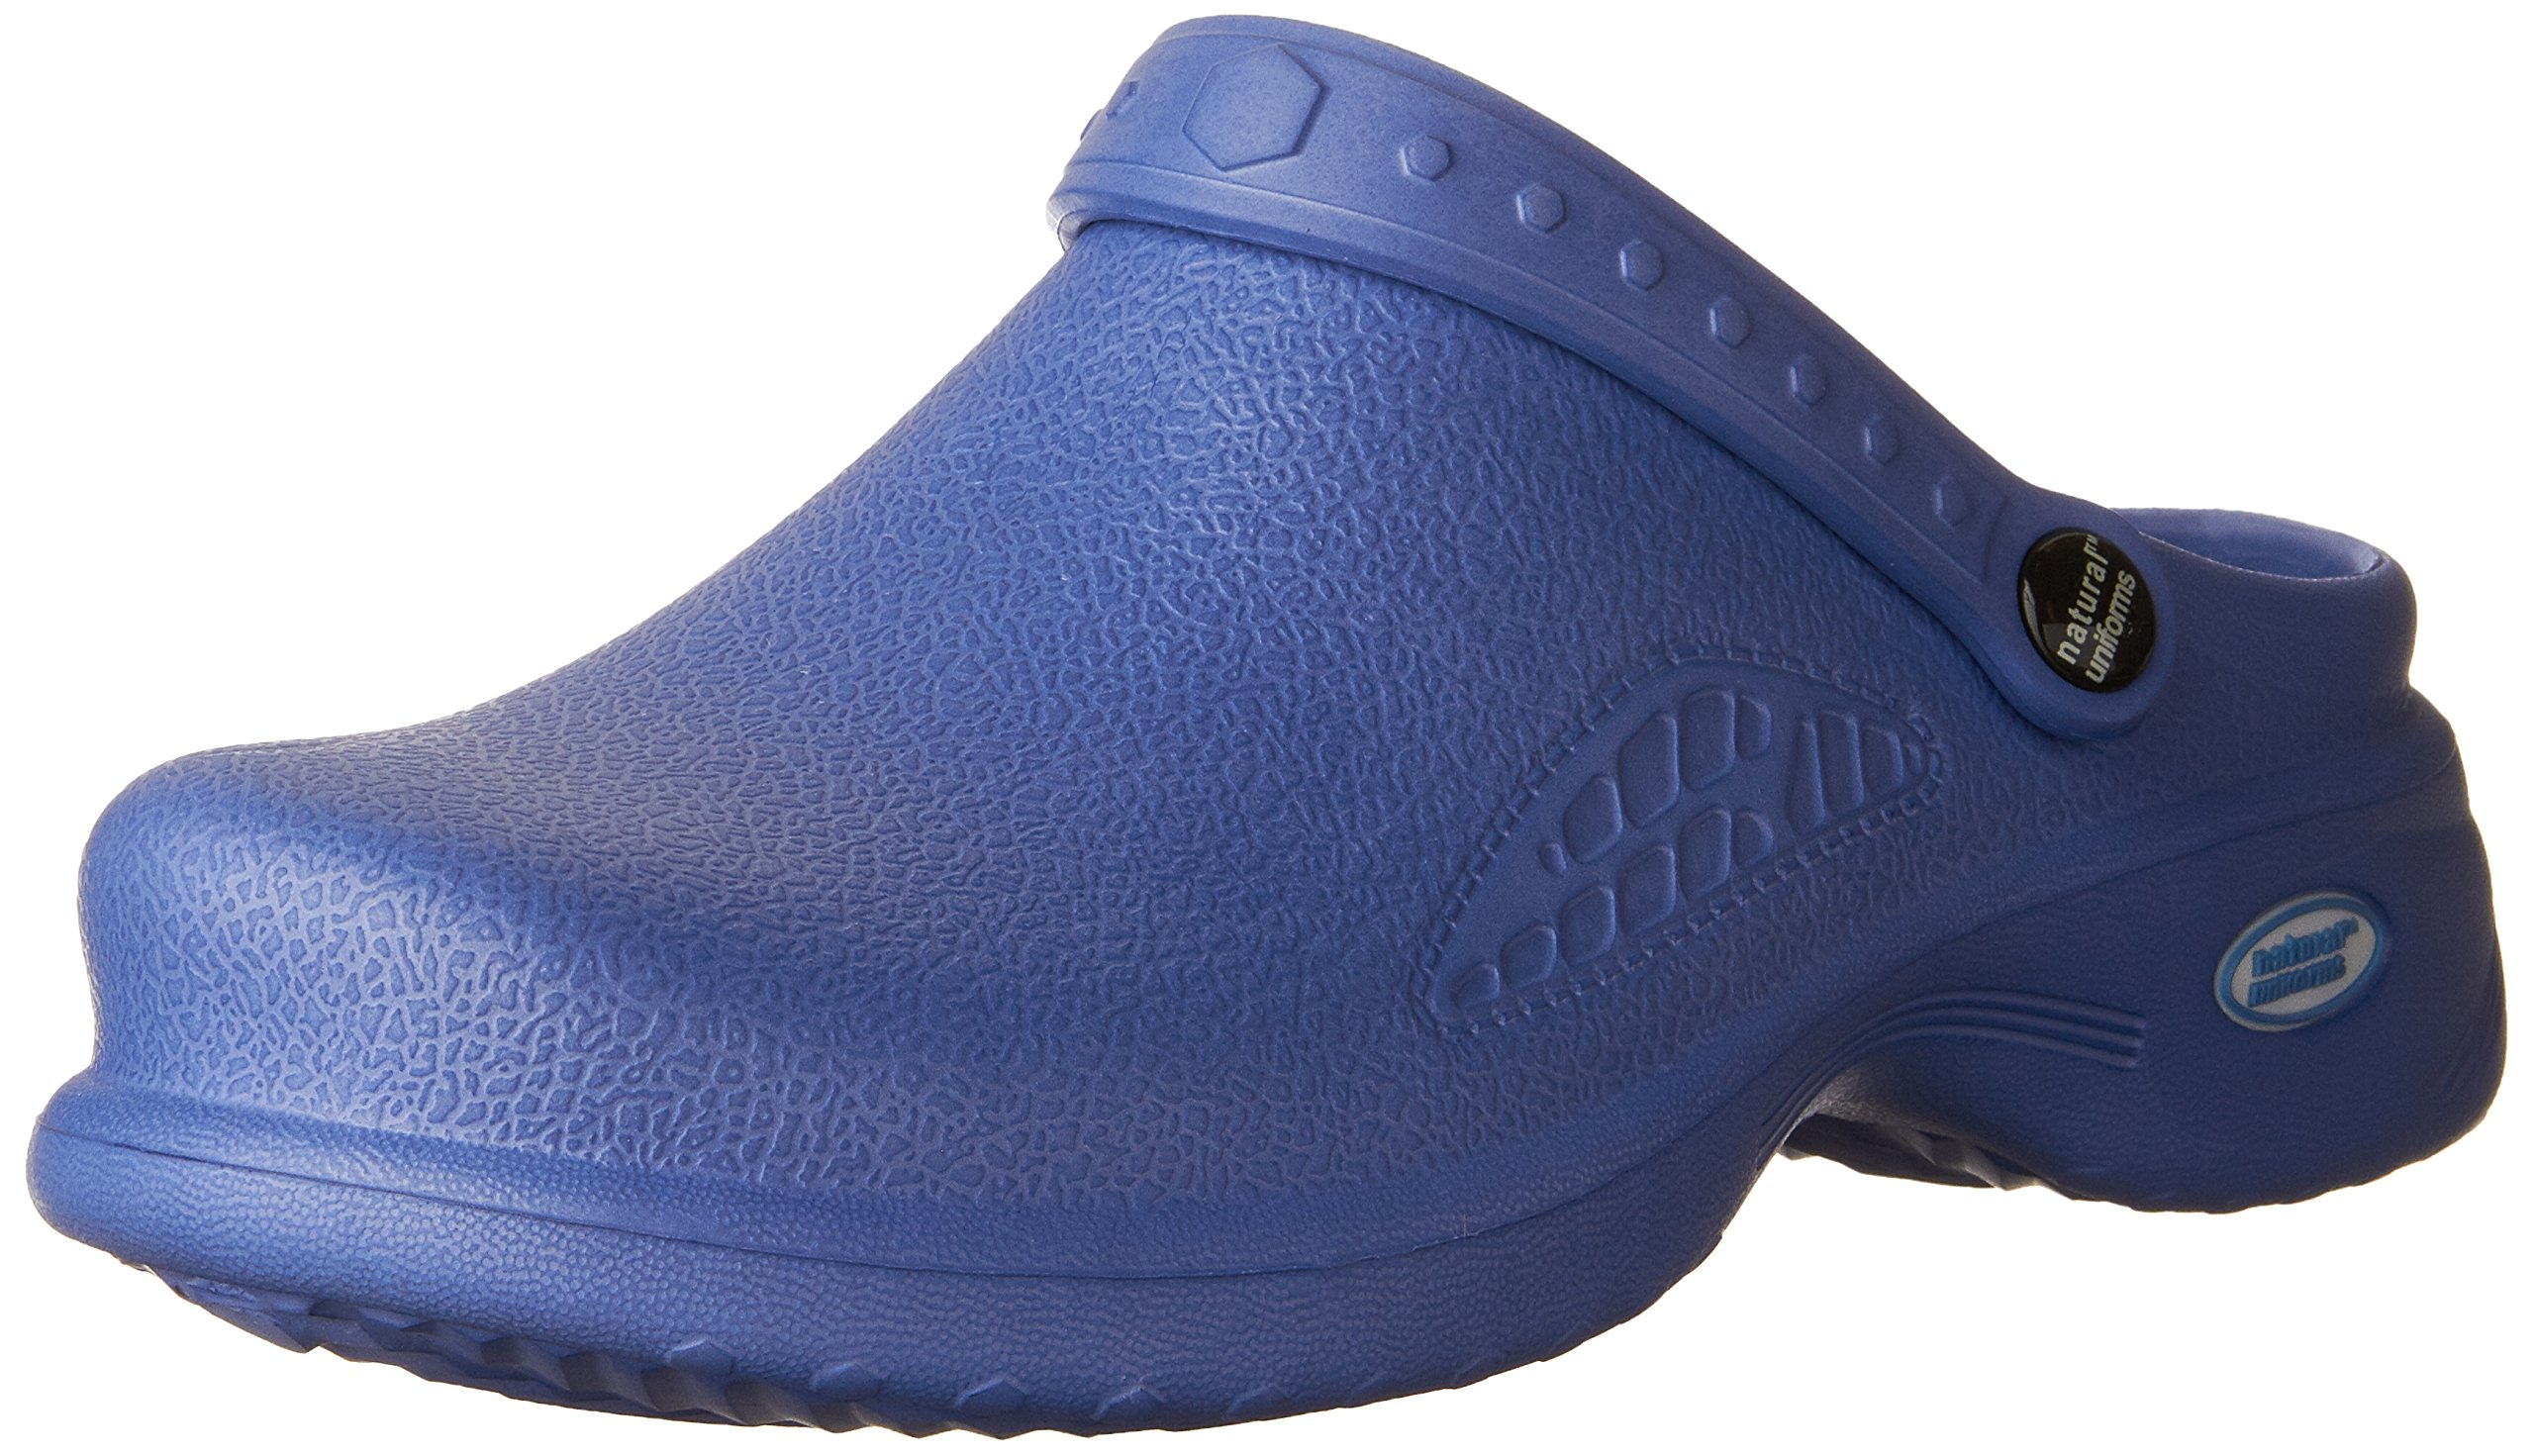 Natural Uniforms Women's Lightweight Comfortable Nurse/Nursing Clogs, Ceil Blue 32339-8B(M) US